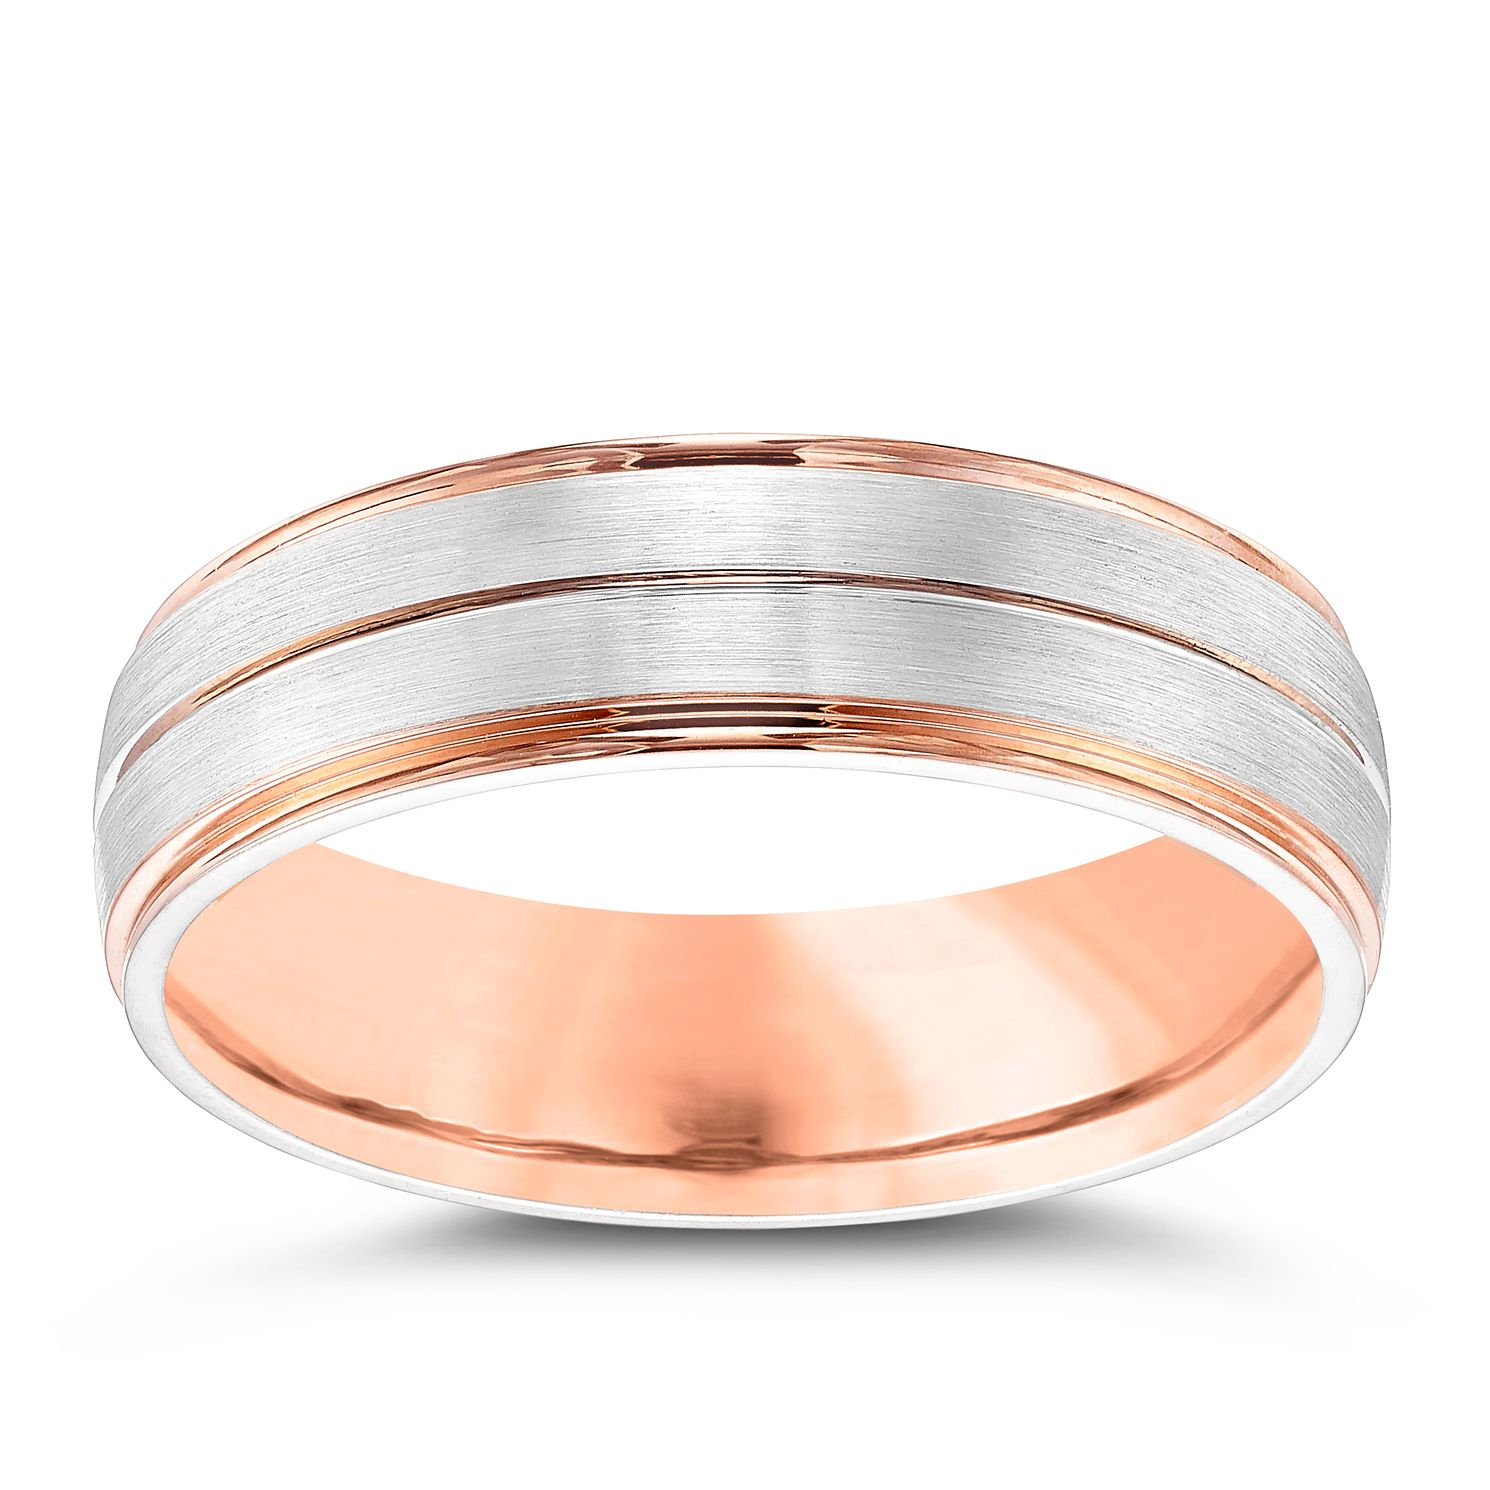 Palladium & 9ct Rose Gold 6mm Ring - Product number 4340507